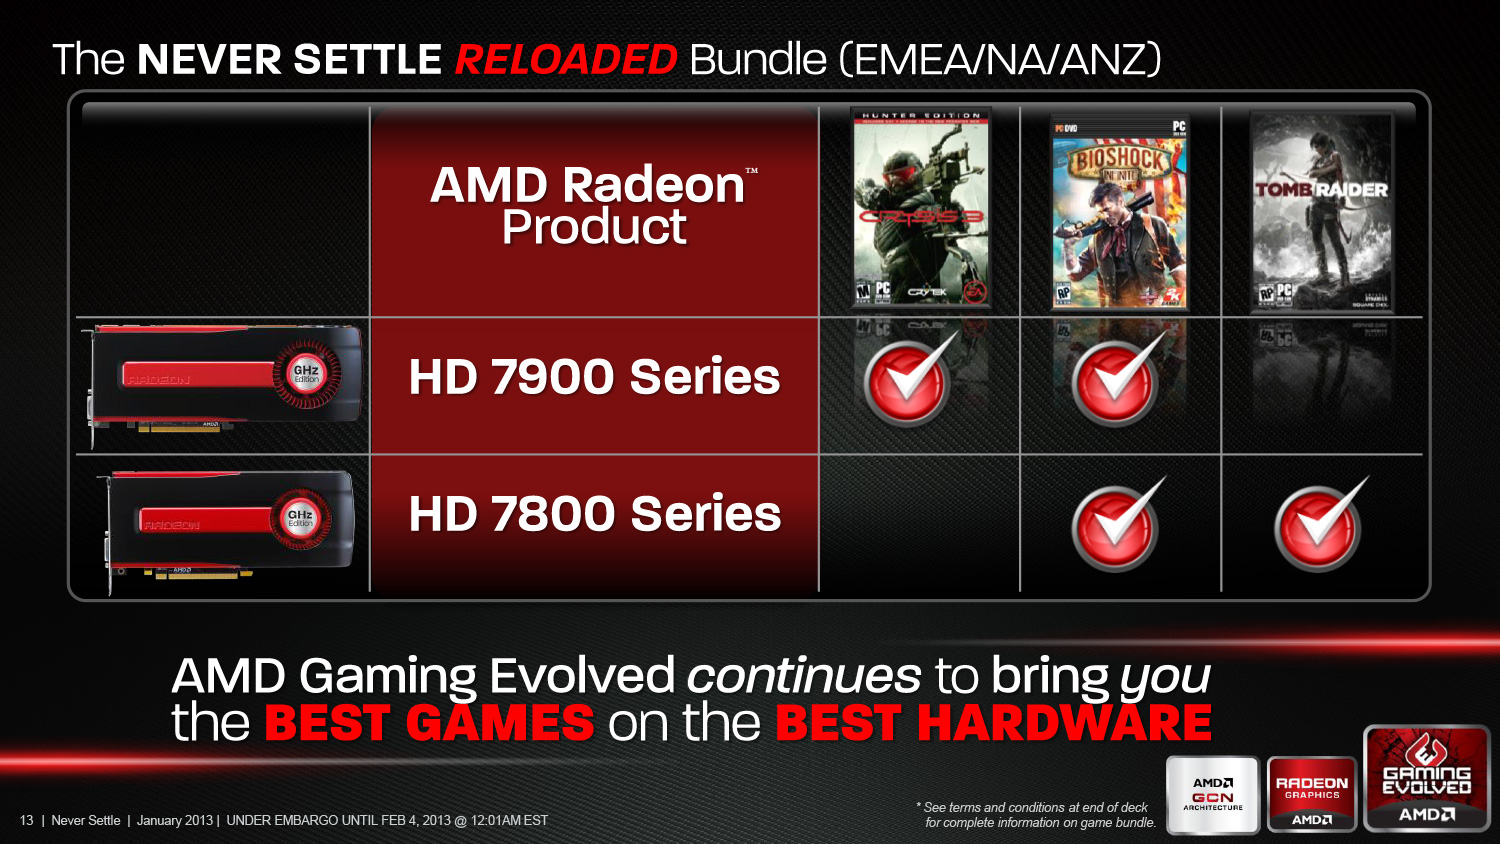 Amd gaming evolved download timed out